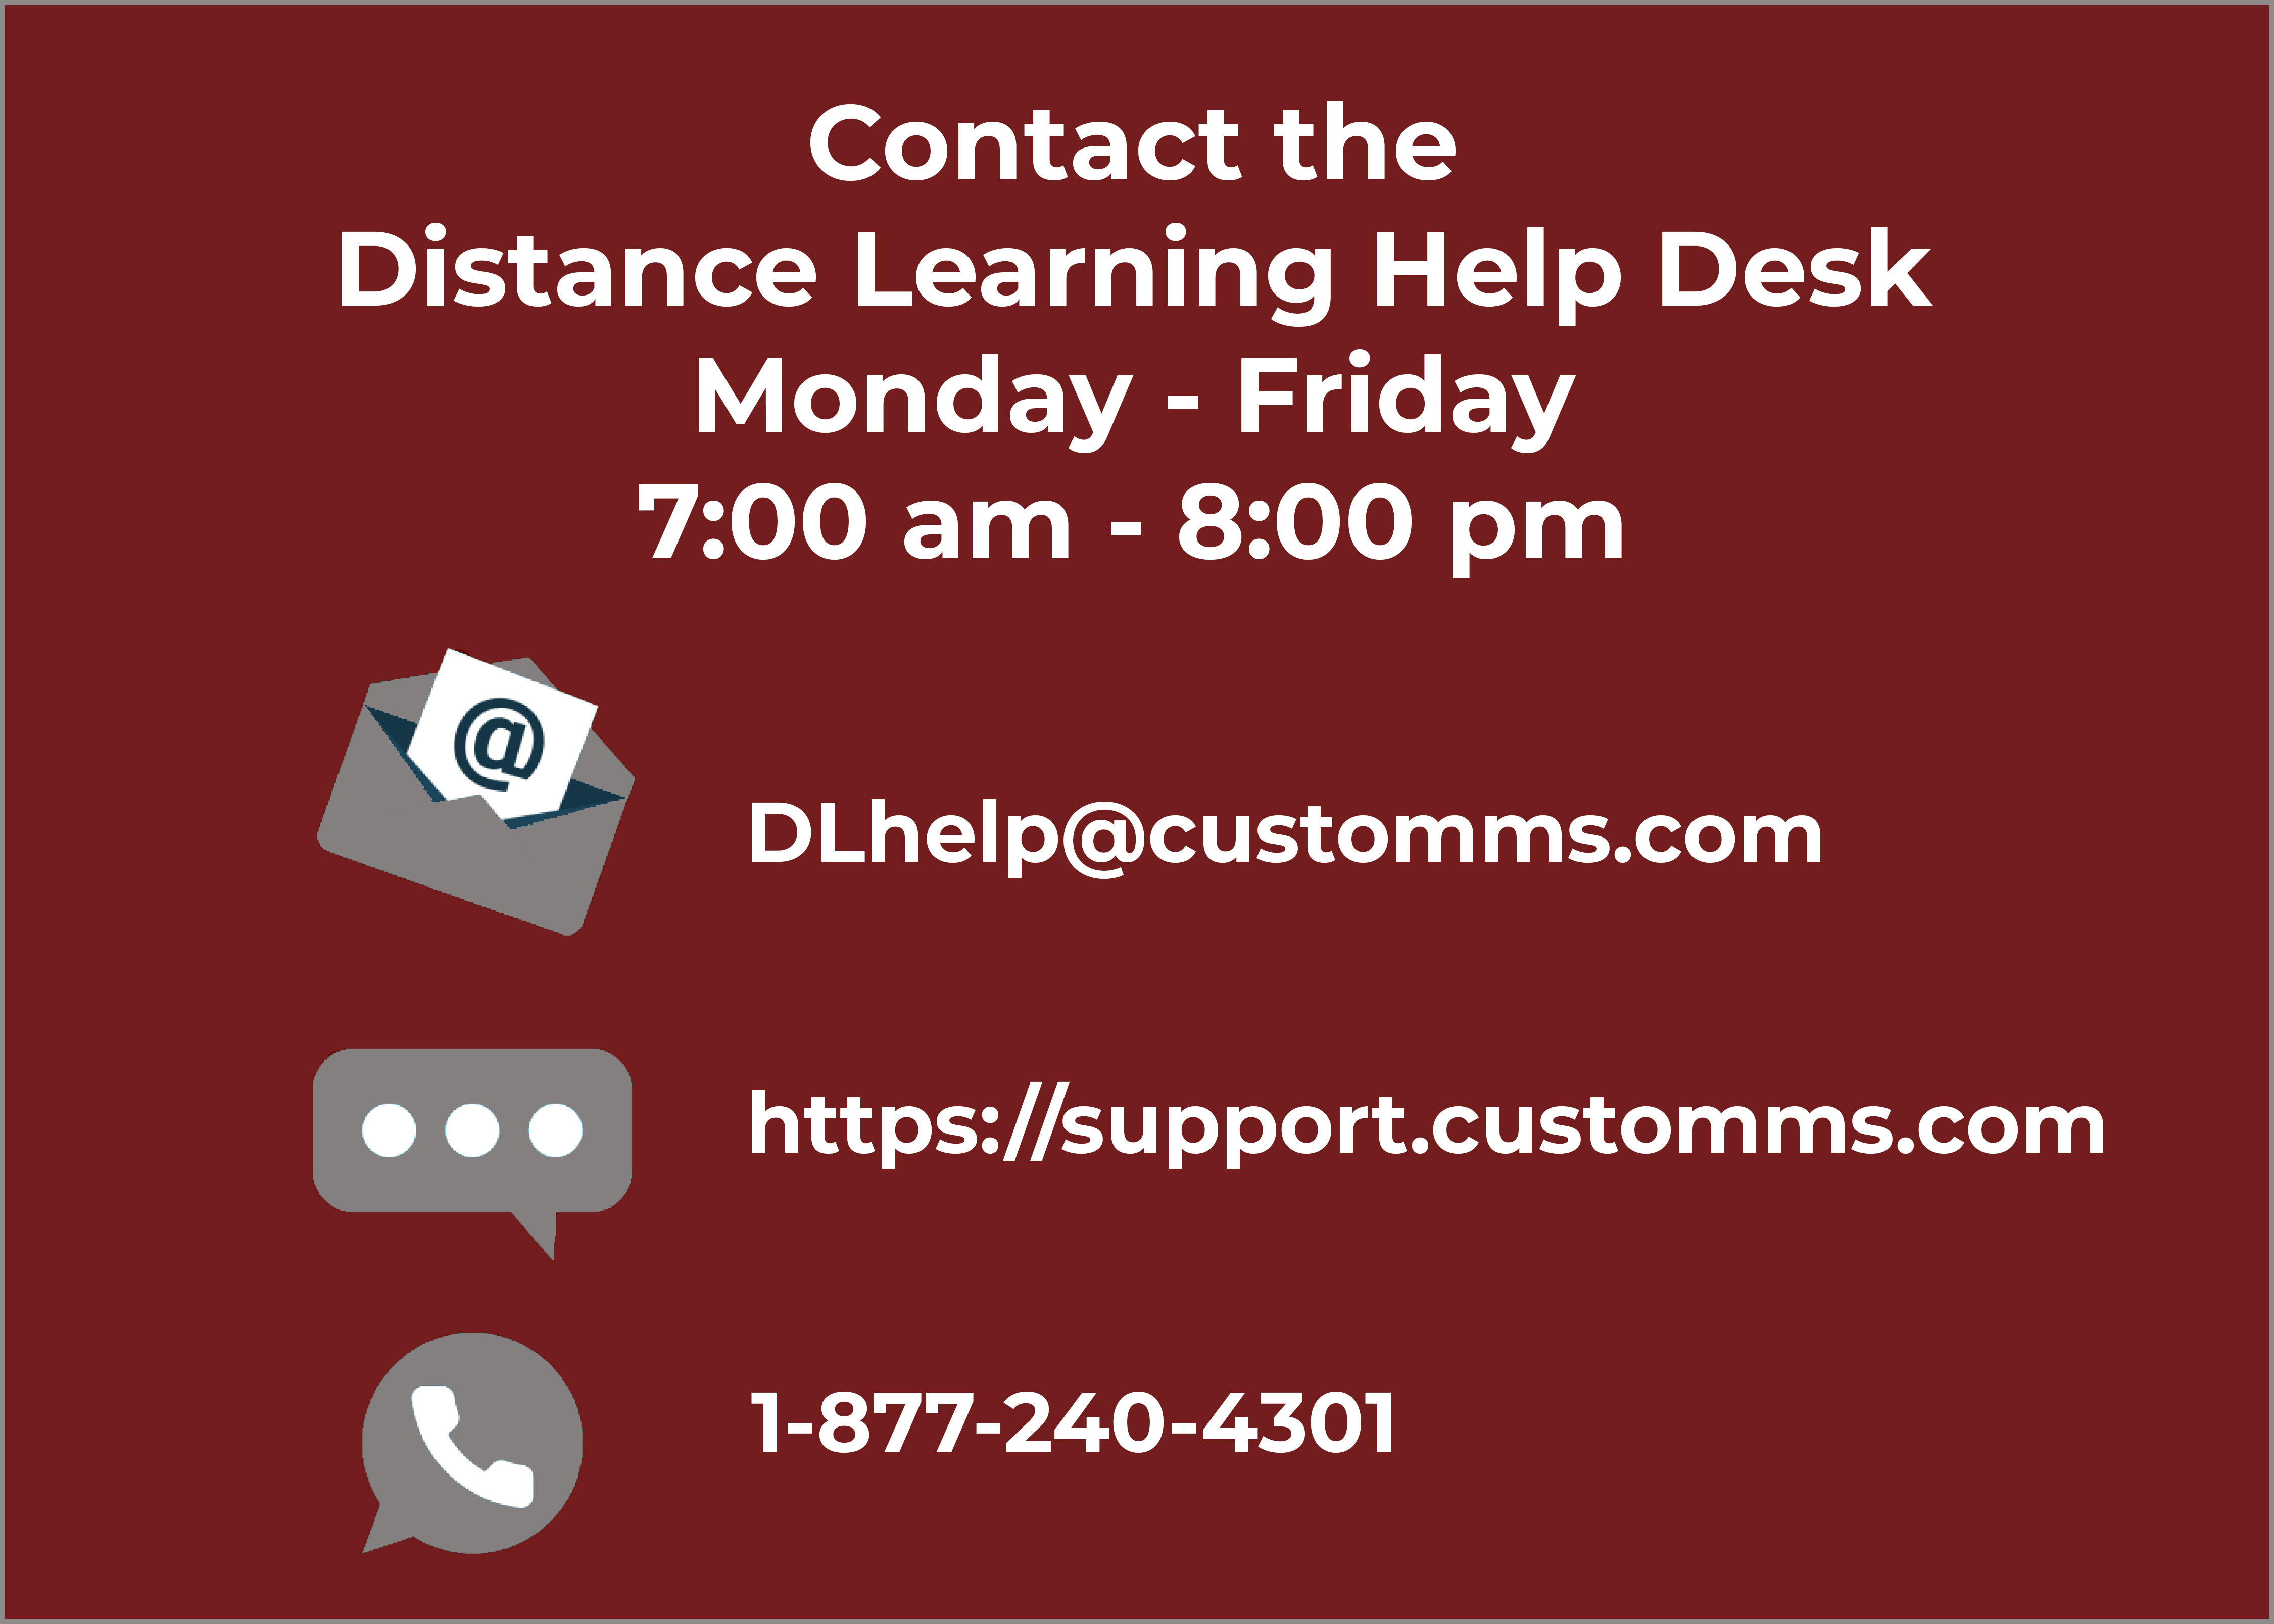 Distance Learning Help Desk Contact Information